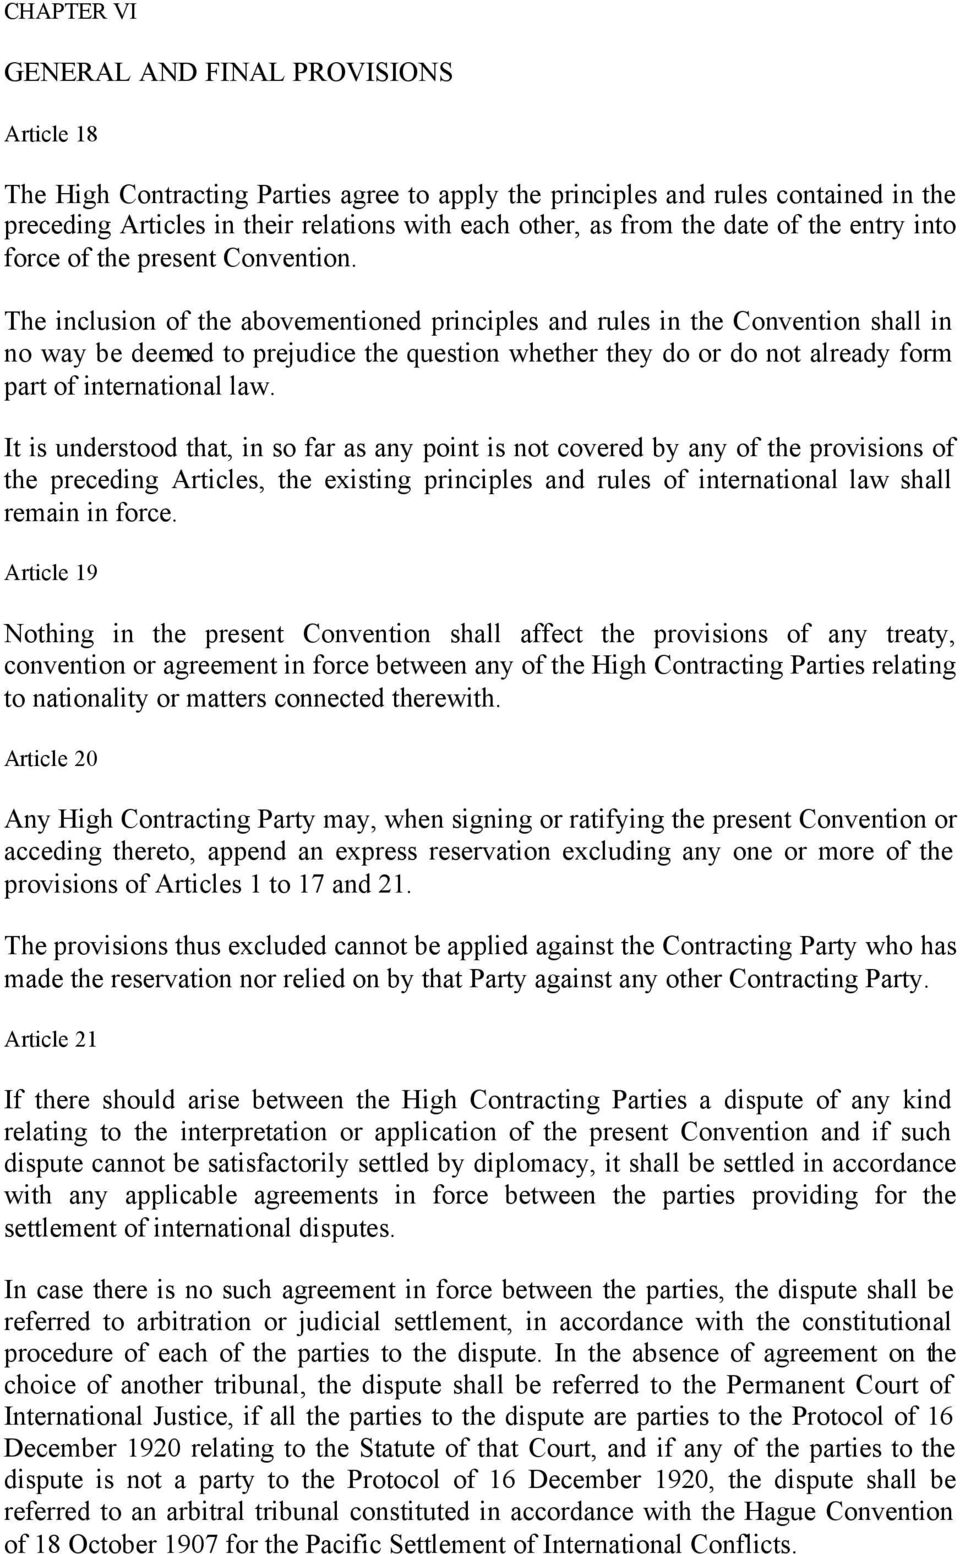 The inclusion of the abovementioned principles and rules in the Convention shall in no way be deemed to prejudice the question whether they do or do not already form part of international law.